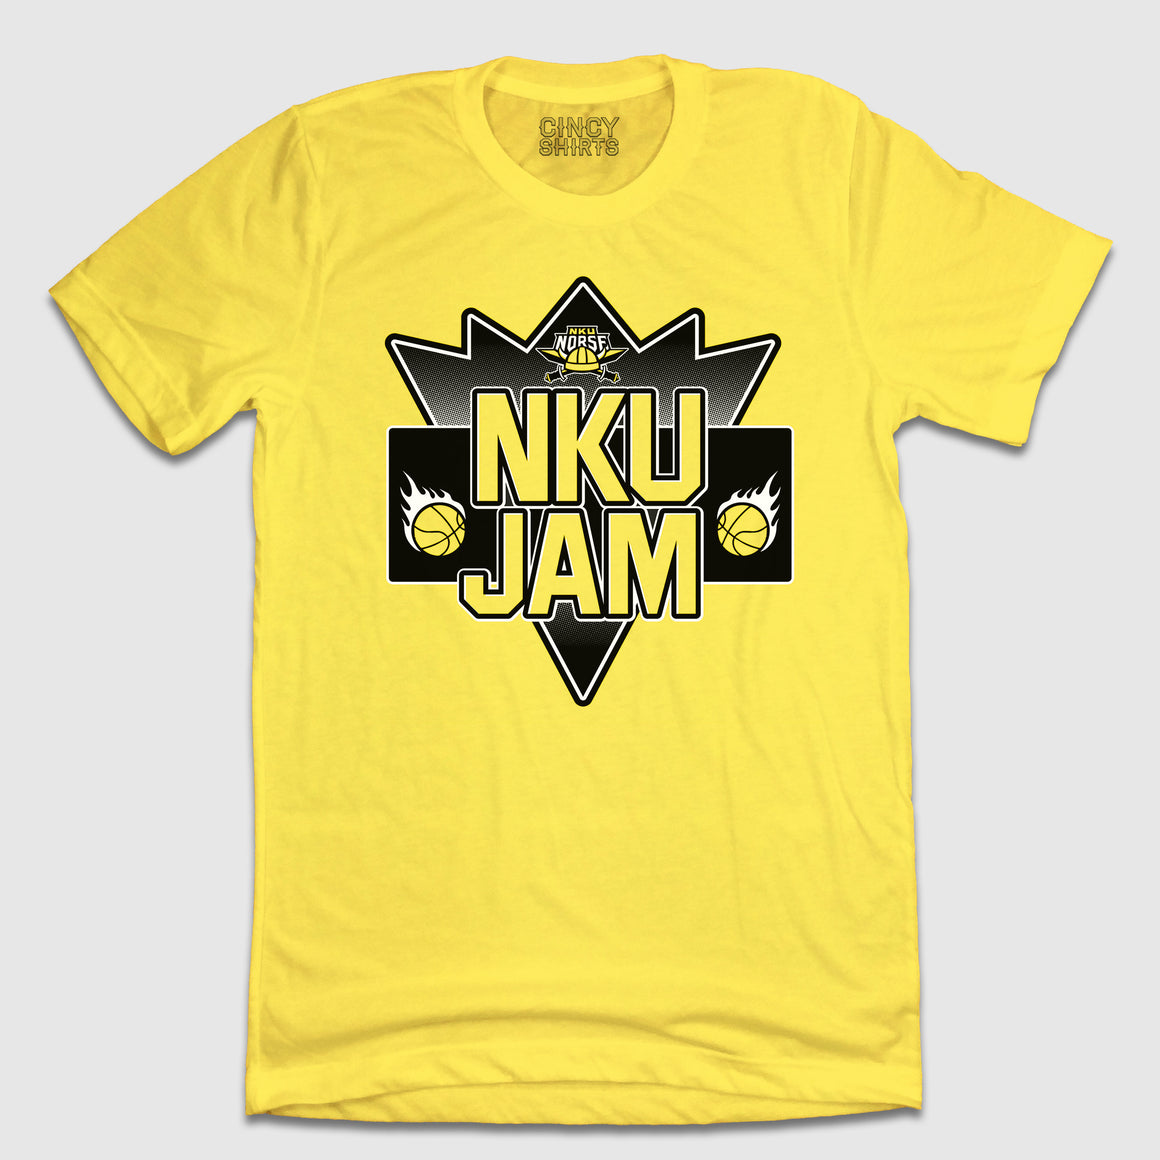 NKU JAM Northern Kentucky University Basketball Tee - Cincy Shirts